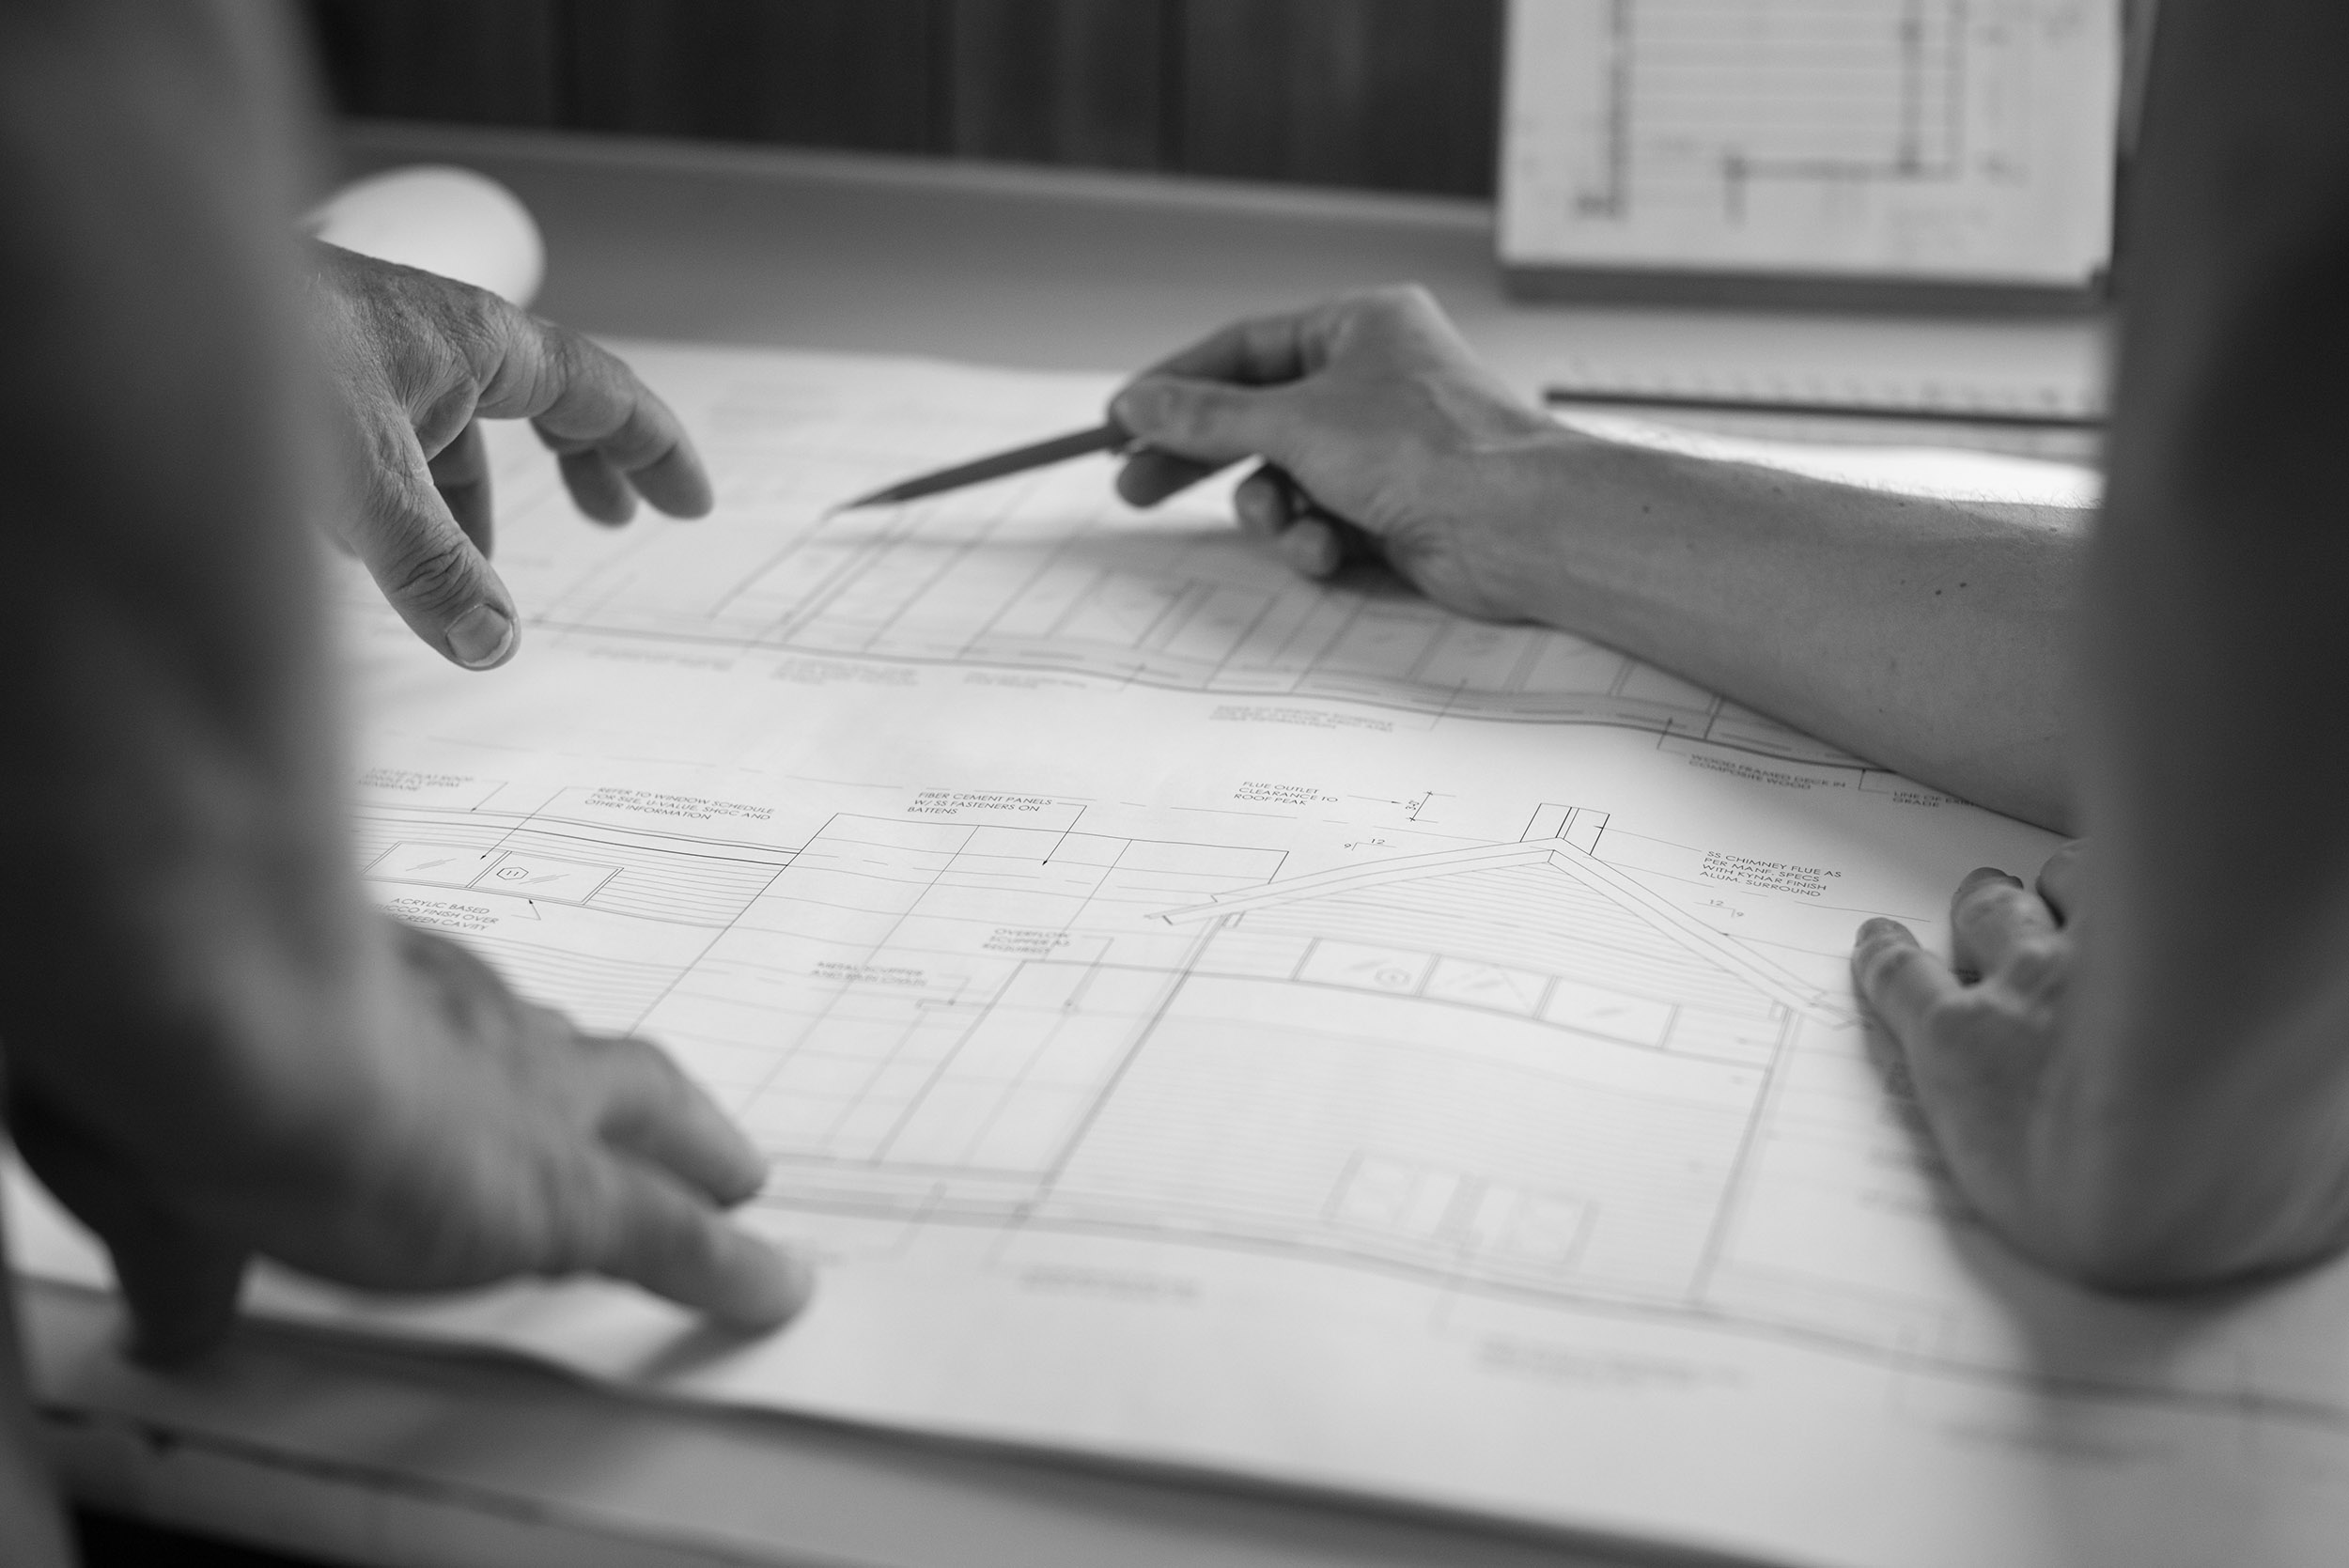 Collaborative Process - We are passionate about the work that we do and recognize that realizing an architectural vision is a collaborative process between owner, architect, and builder. Construction administration is always part of our project delivery process, which ensures we are involved until a project's completion to help make the collaborative vision a reality.